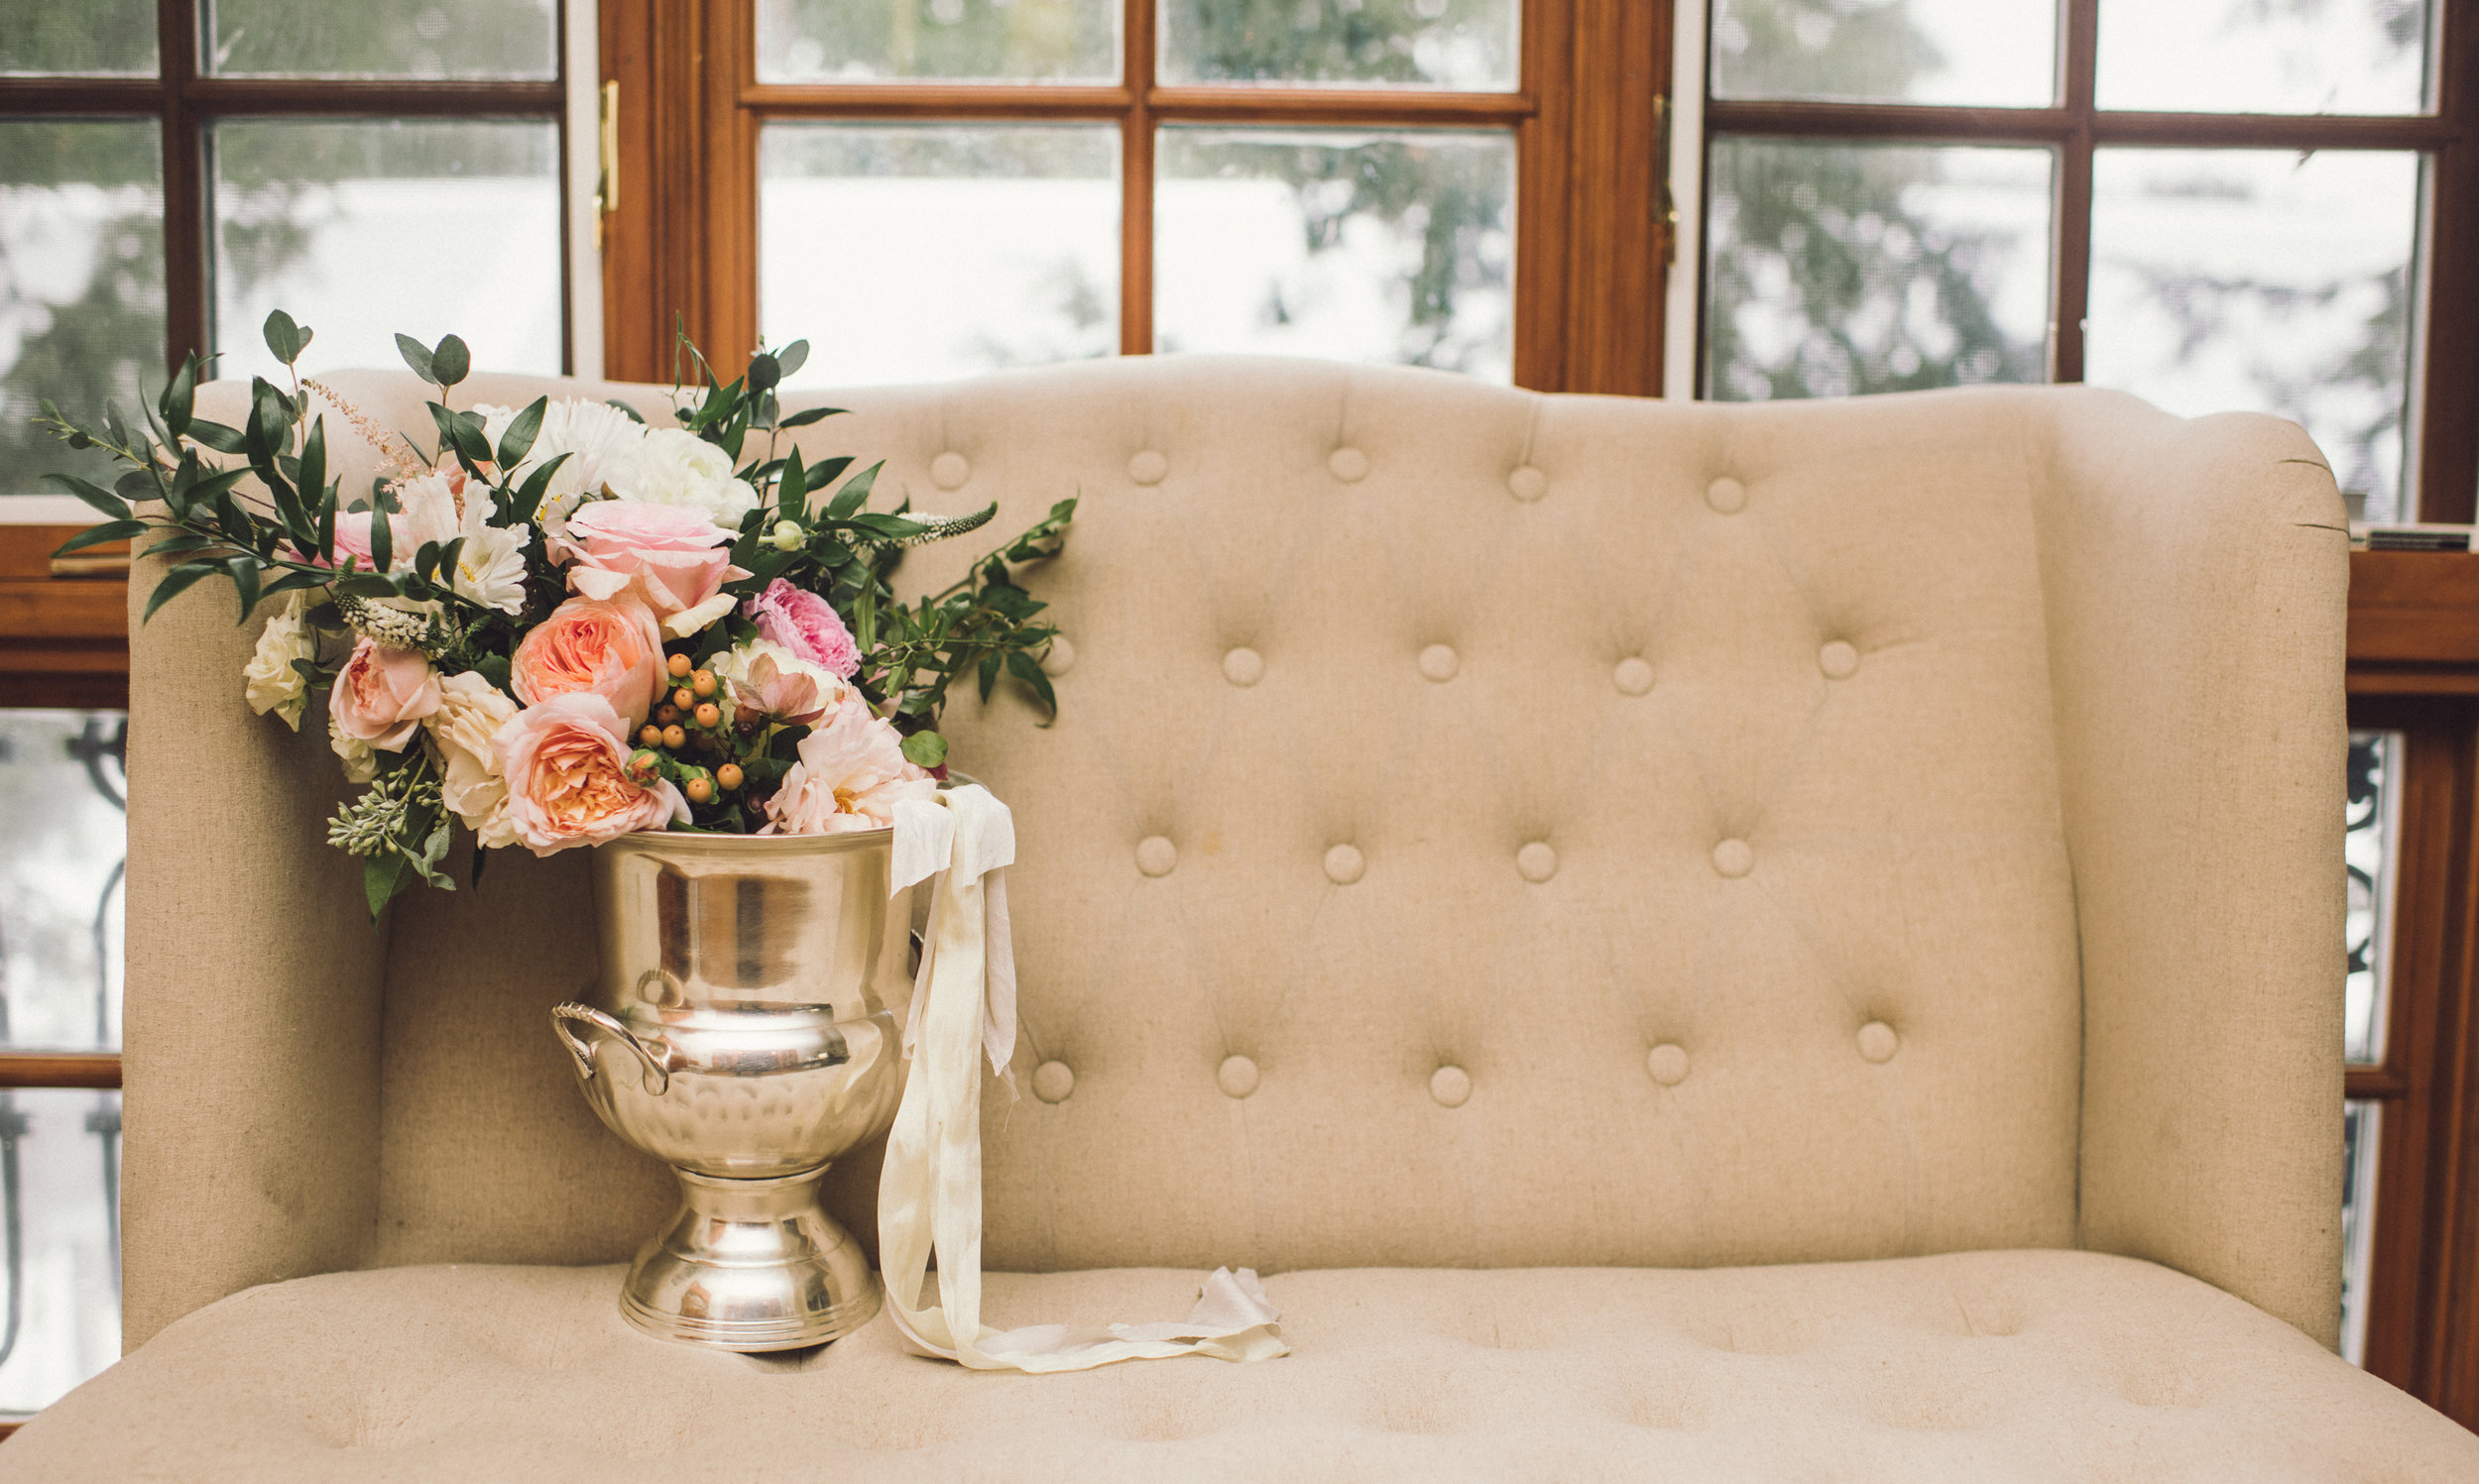 GLENVIEW MANSION WEDDING - INTIMATE WEDDING PHOTOGRAPHER - TWOTWENTY by CHI-CHI AGBIM-94.jpg